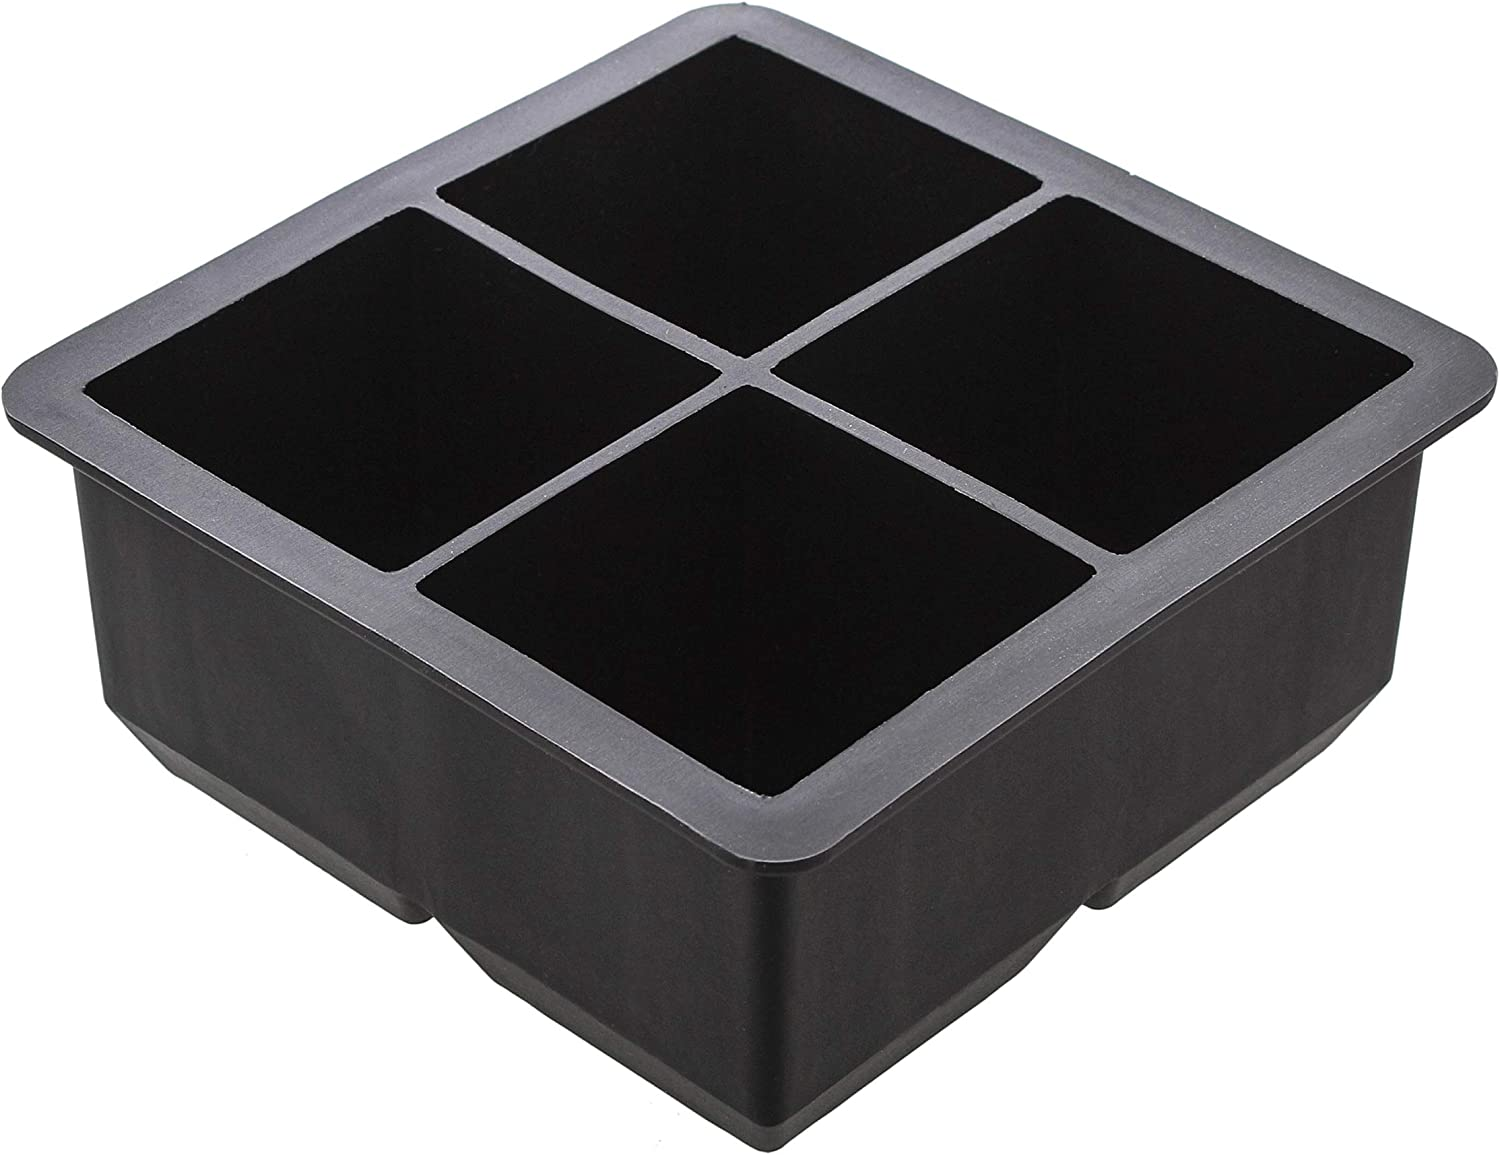 7Penn Silicone Ice Cube Mold 4 Cubes Black - Giant Rubber Ice Cube Trays Flexible Ice Mold for Food, Drink 1pc